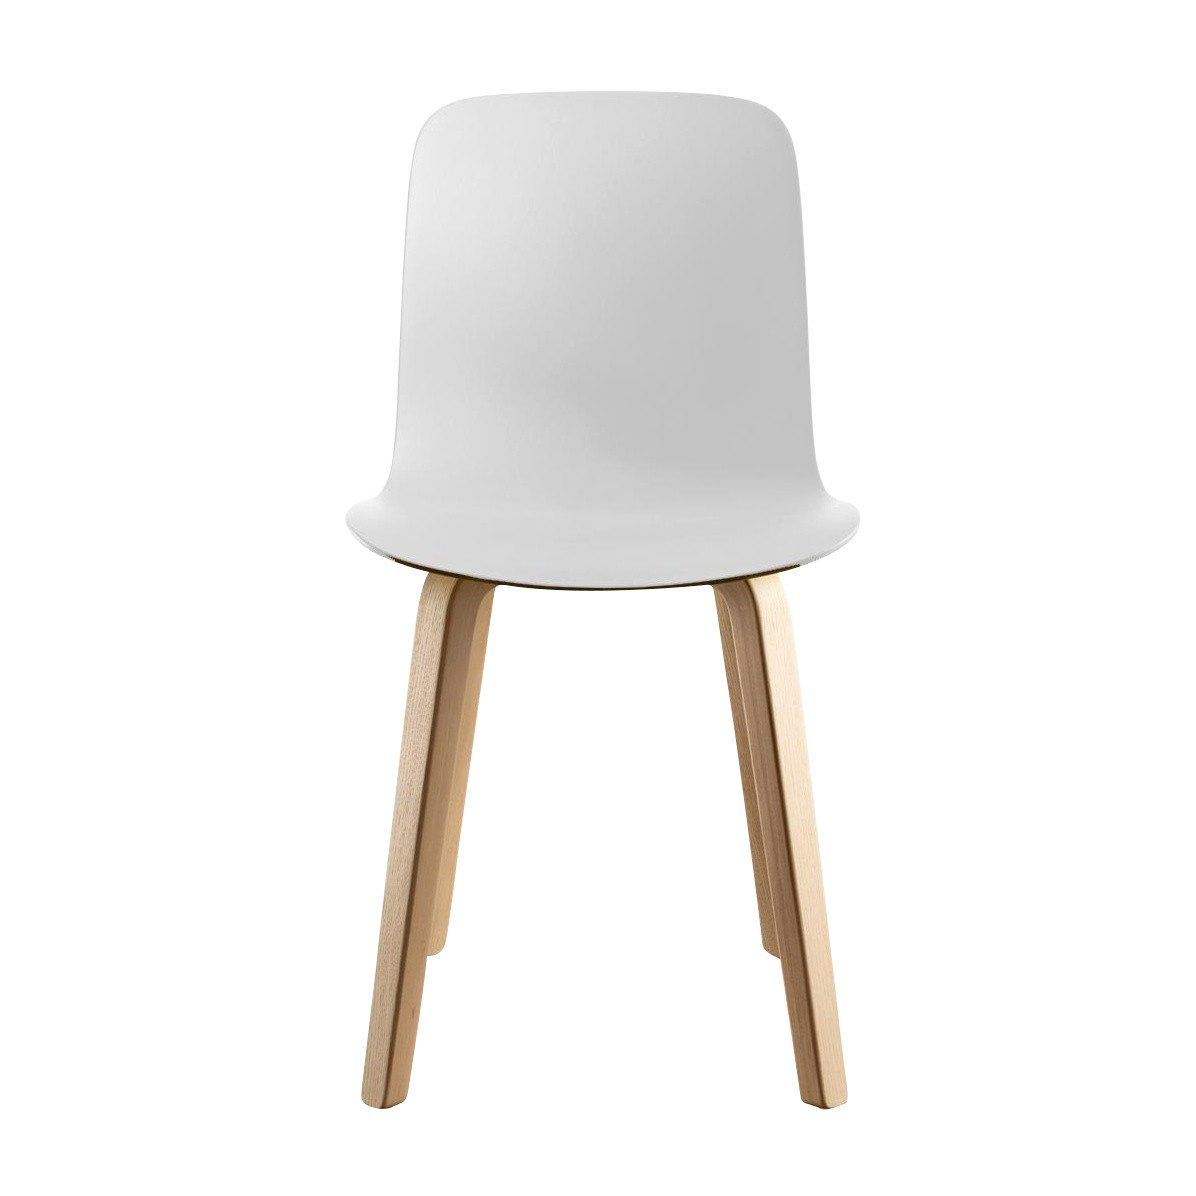 Substance Chair | Magis | AmbienteDirect.com